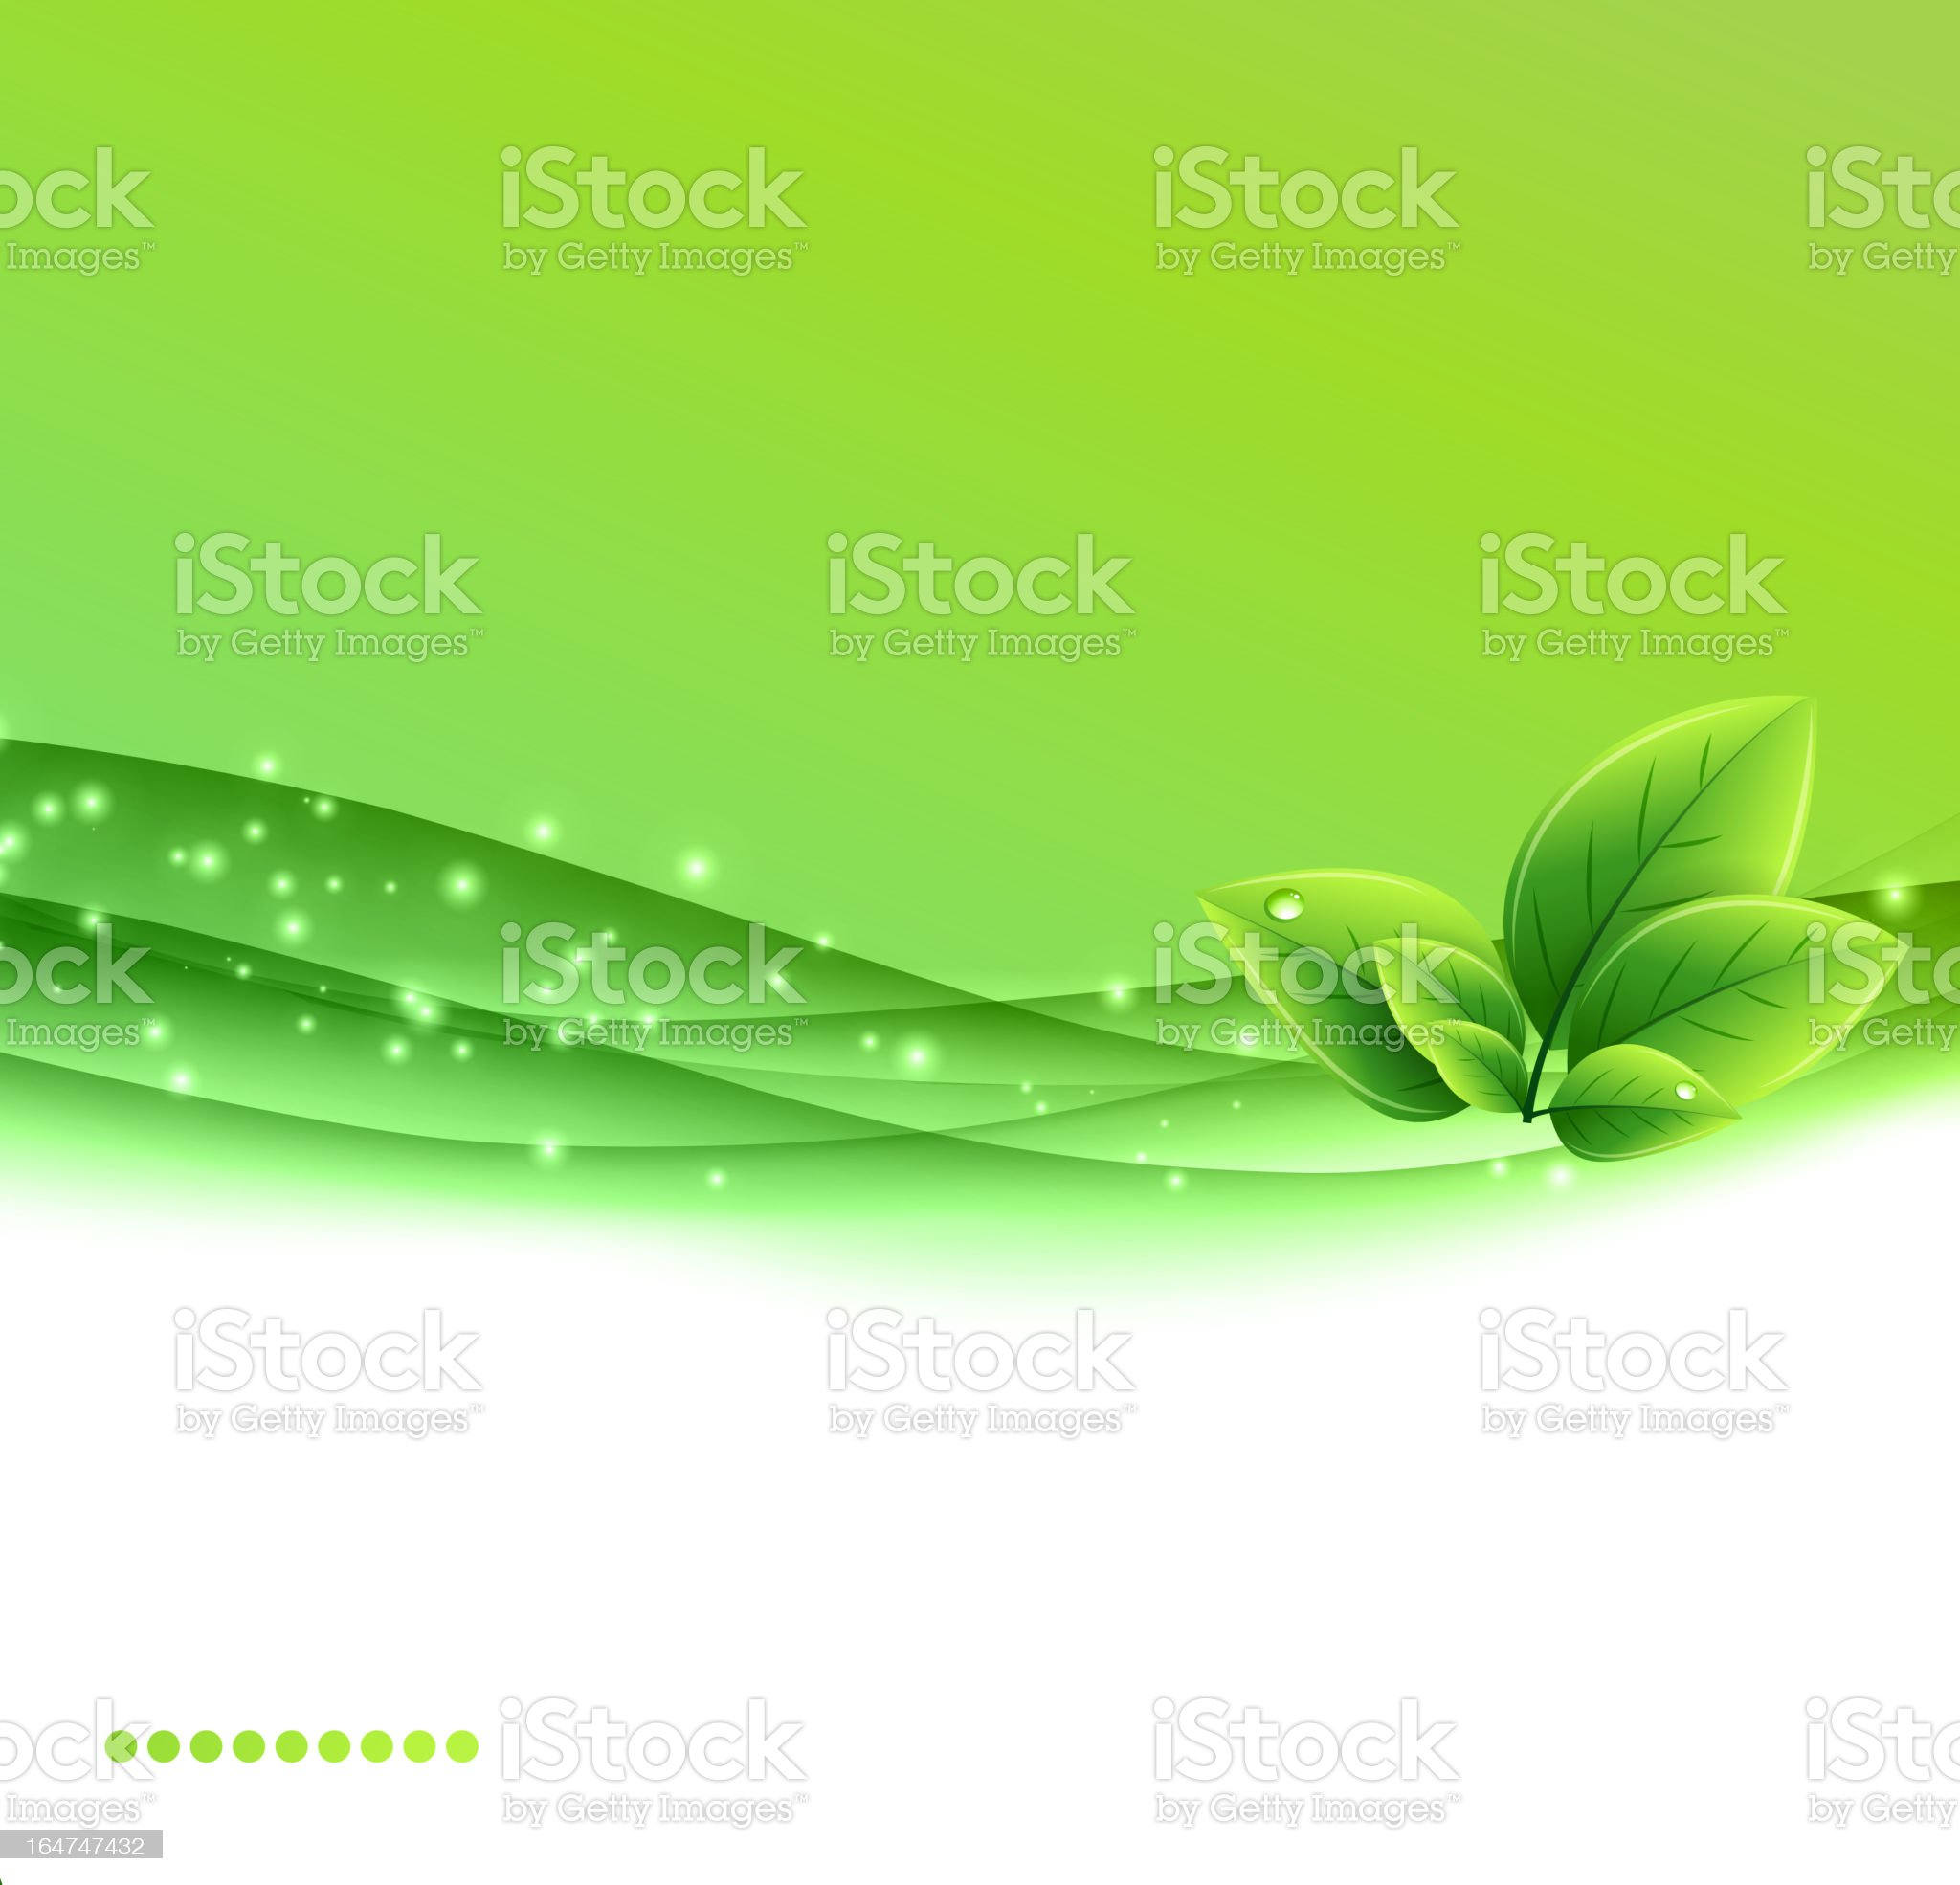 Green nature background royalty-free stock vector art